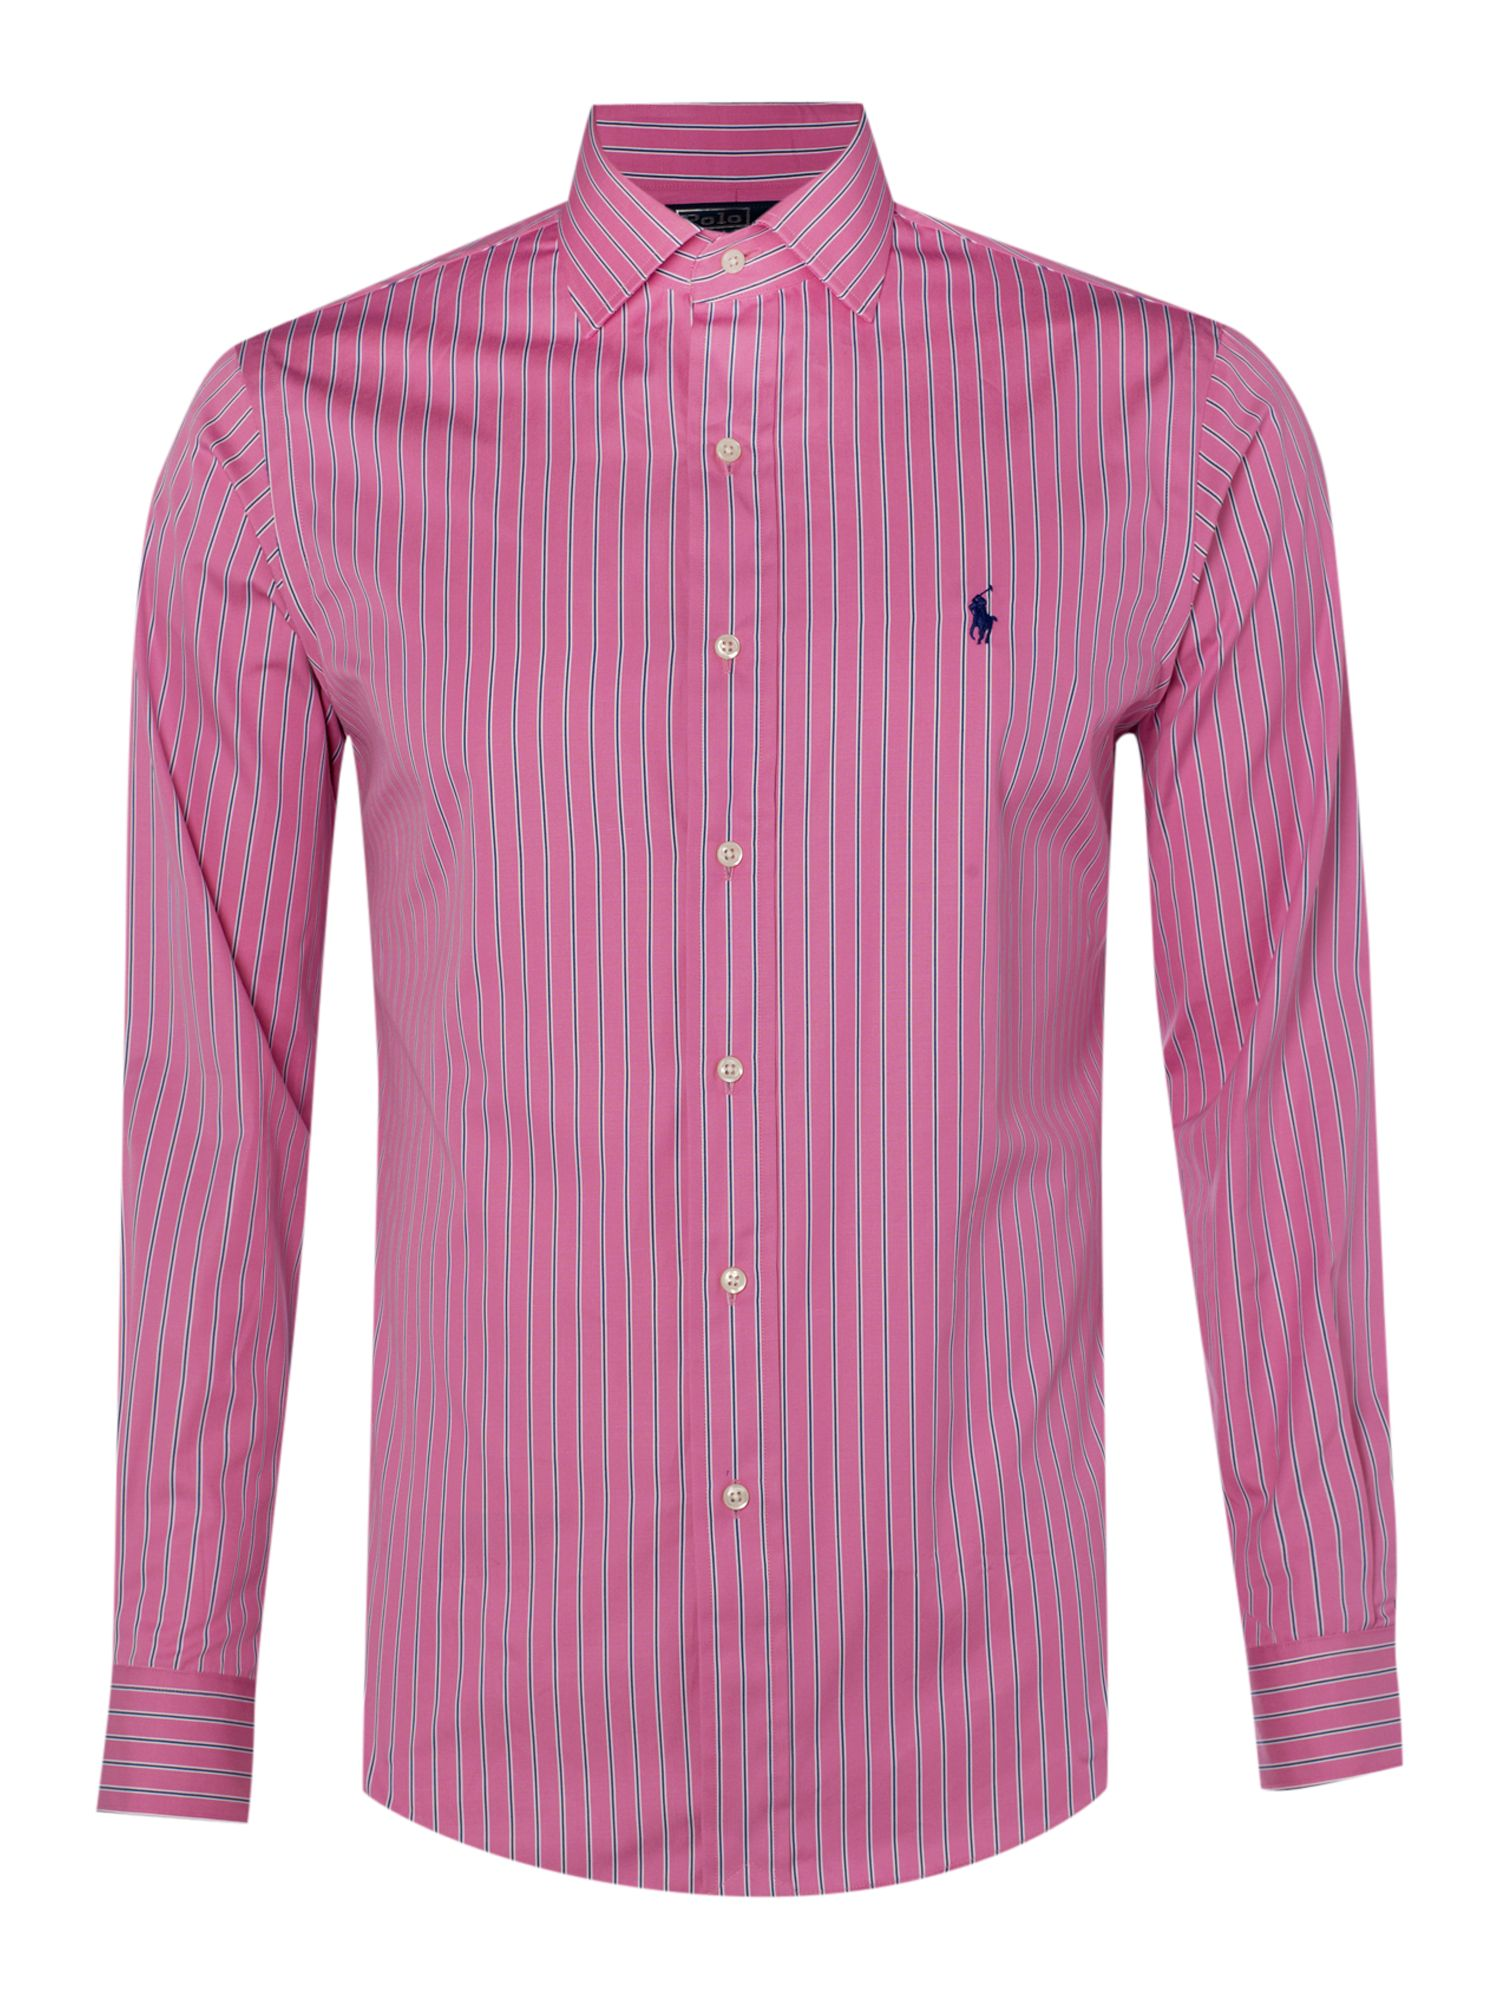 Polo ralph lauren long sleeved regent striped shirt in for Polo shirts without buttons